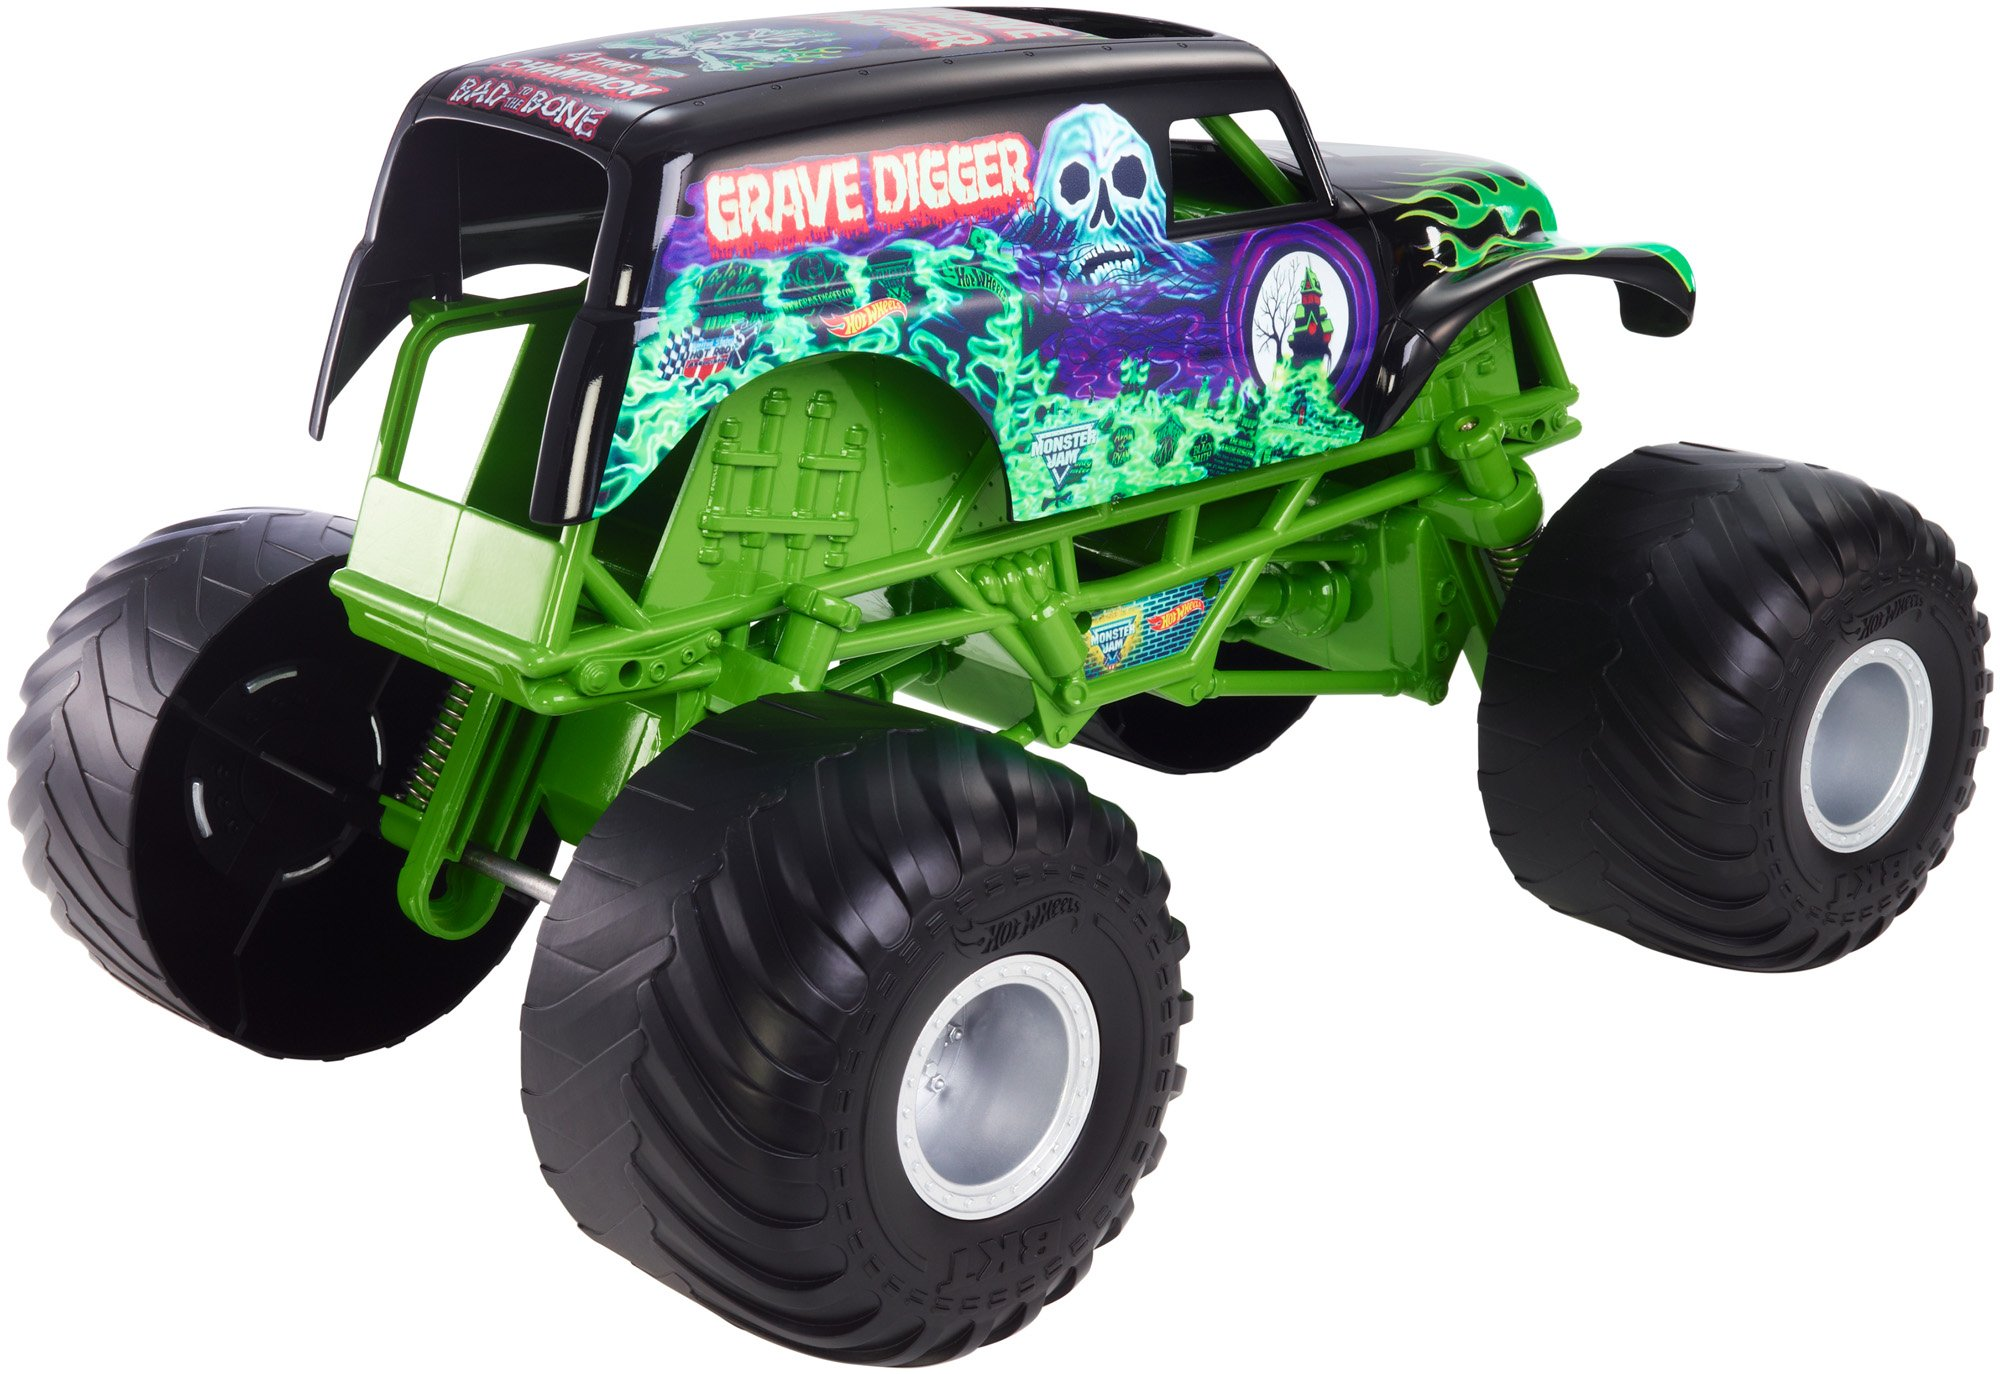 Hot Wheels Monster Jam Giant Grave Digger Truck by Hot Wheels (Image #2)